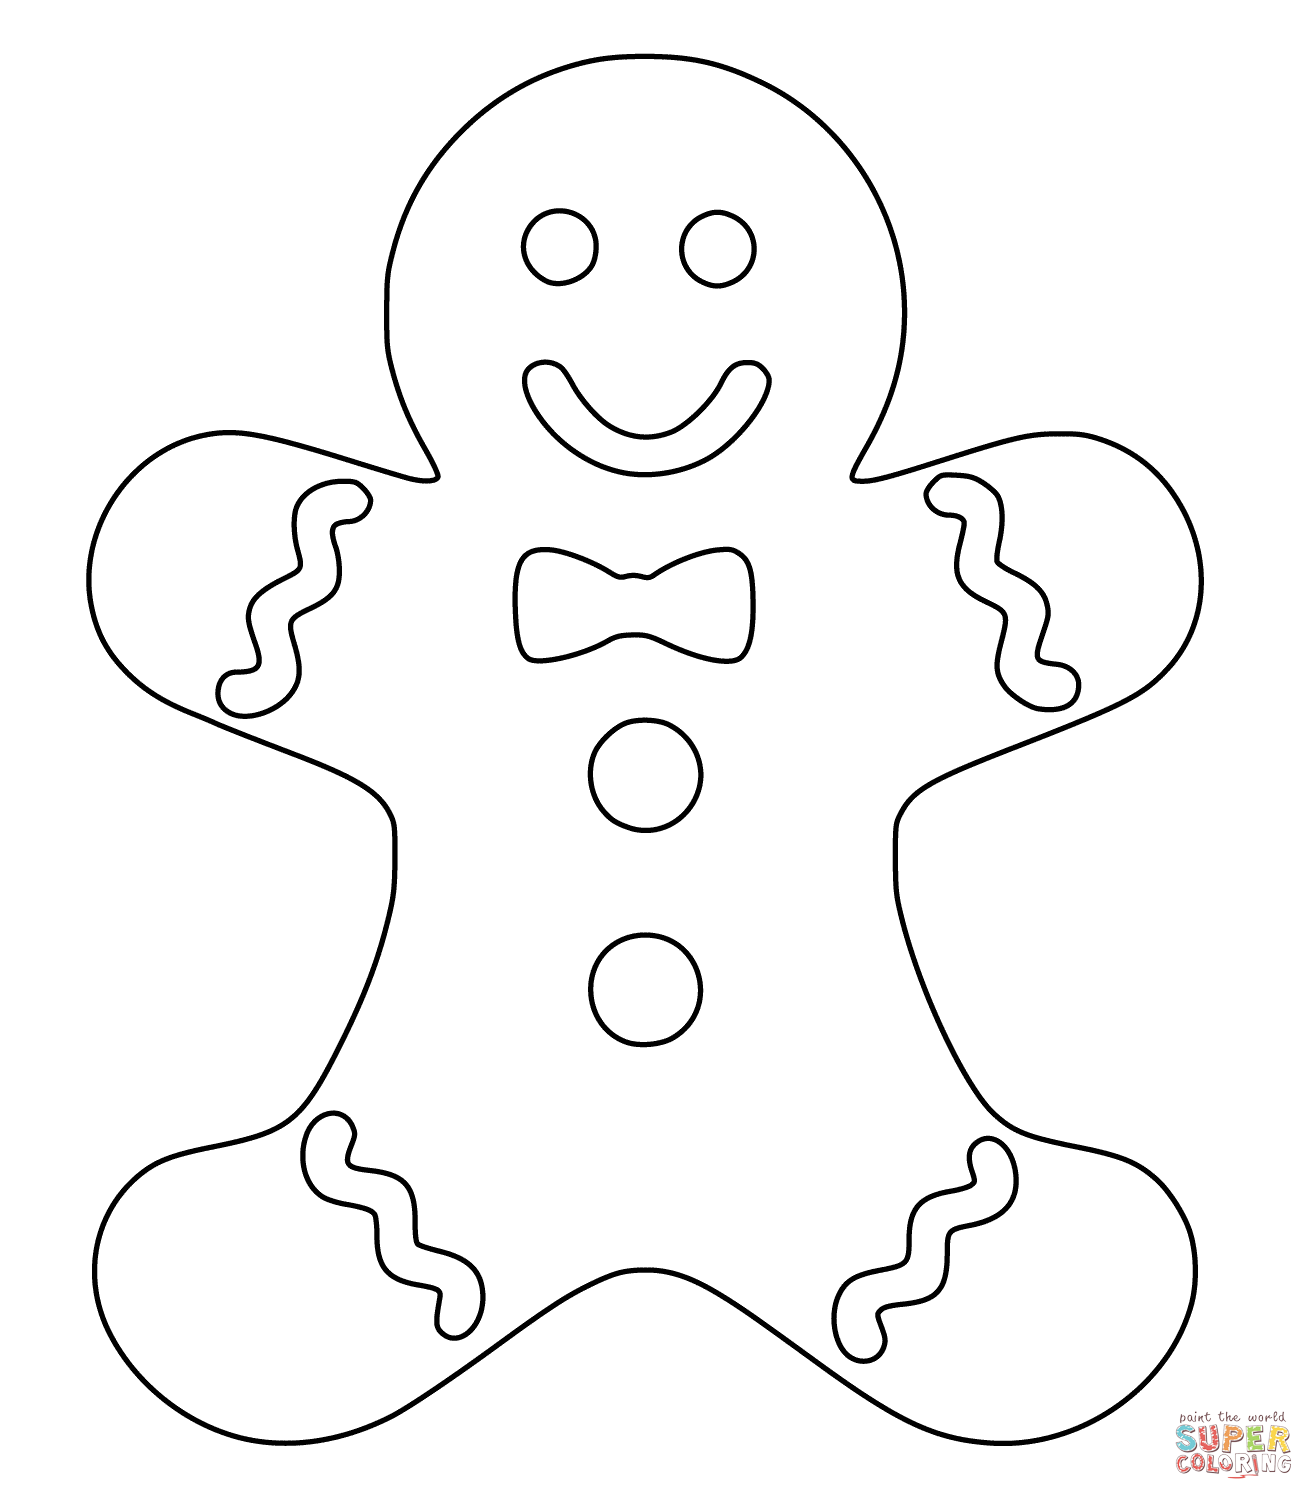 blank gingerbread man coloring page blank gingerbread man coloring page from christmas man blank page coloring gingerbread